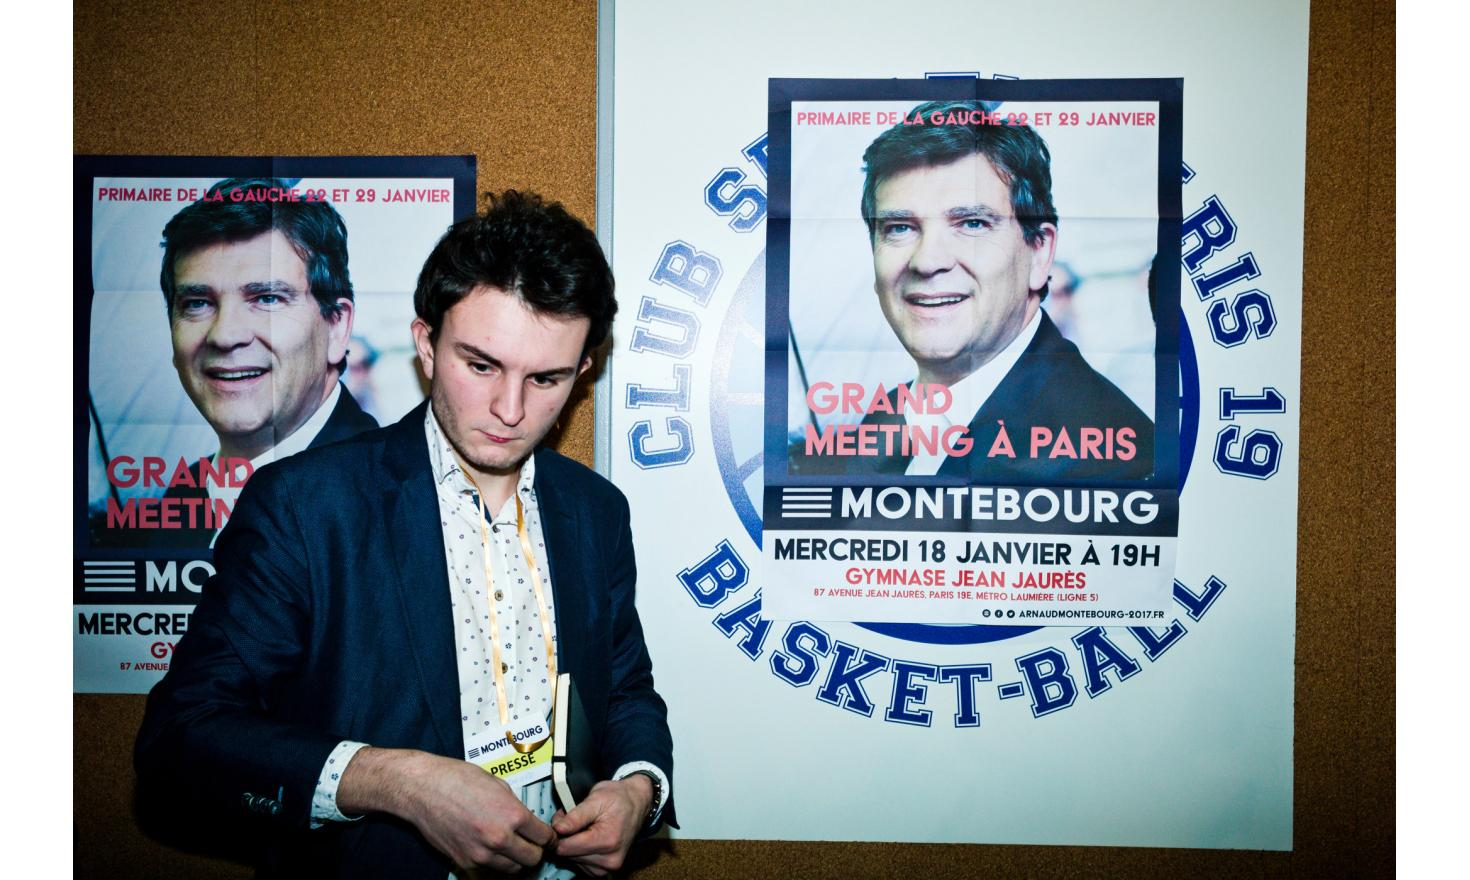 Meeting of Arnaud Montebourg at the Gymnase Jean-Jaurès in Paris